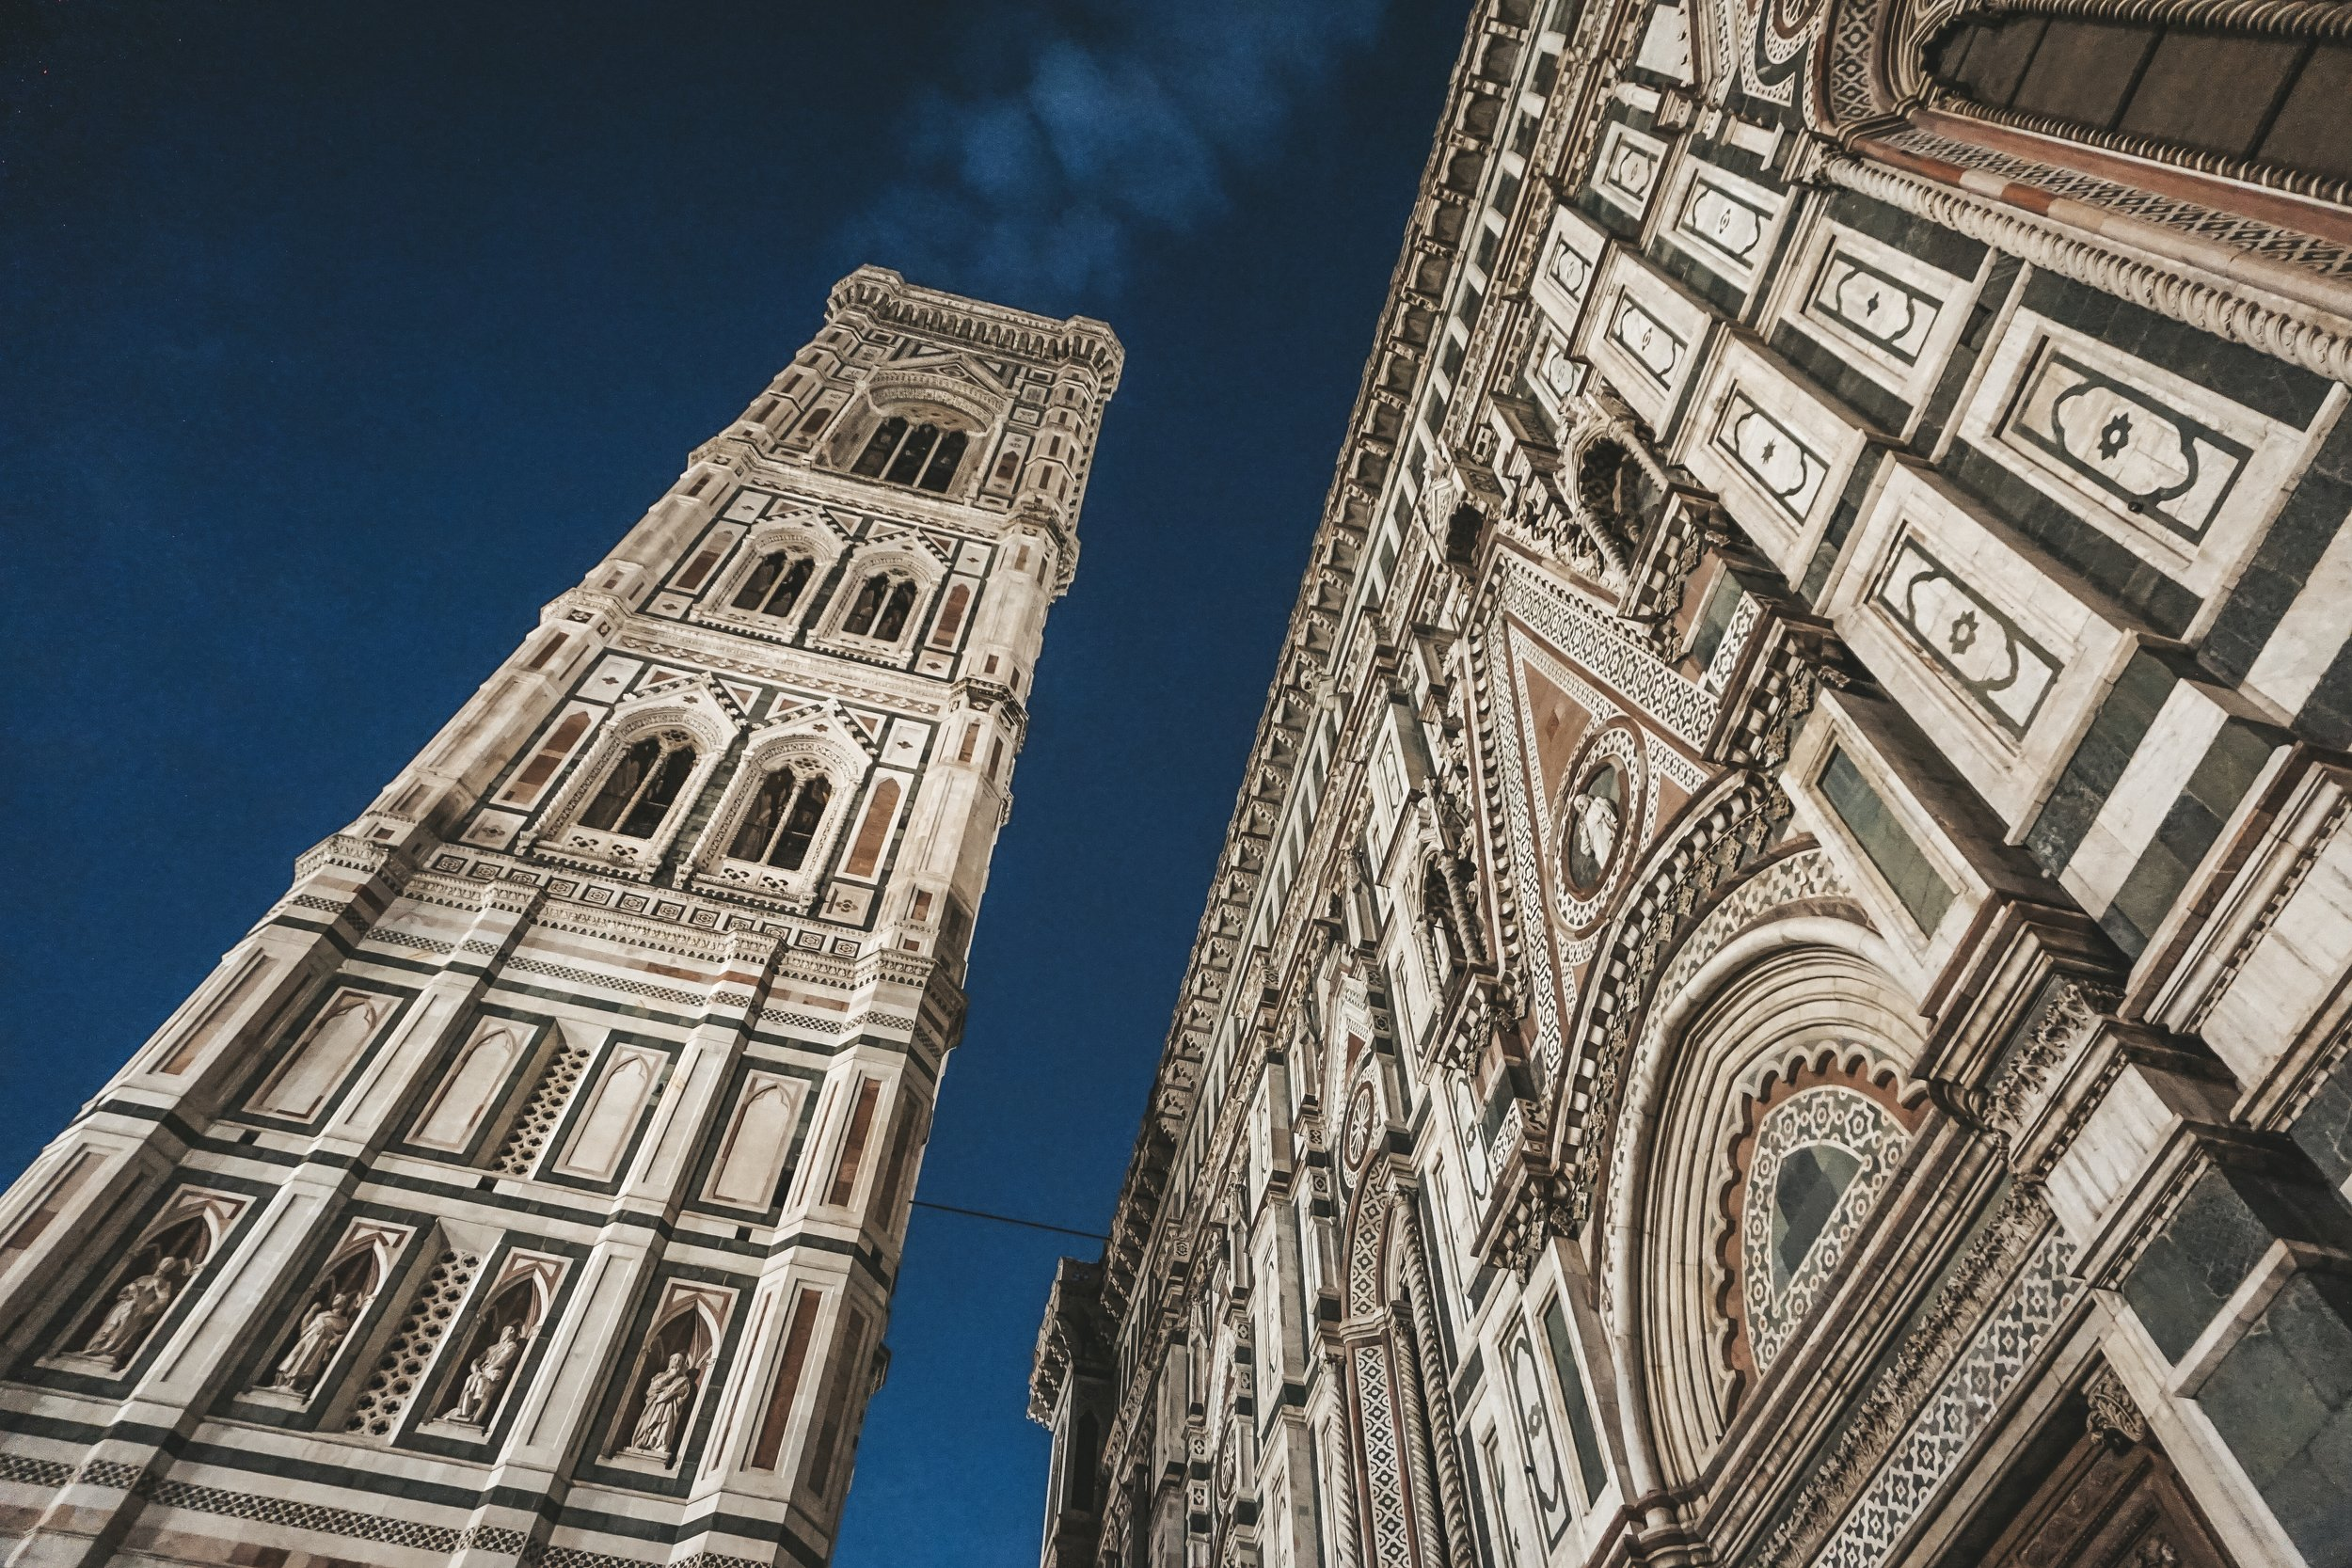 The Duomo is the pinnacle of Gothic style Magnificence